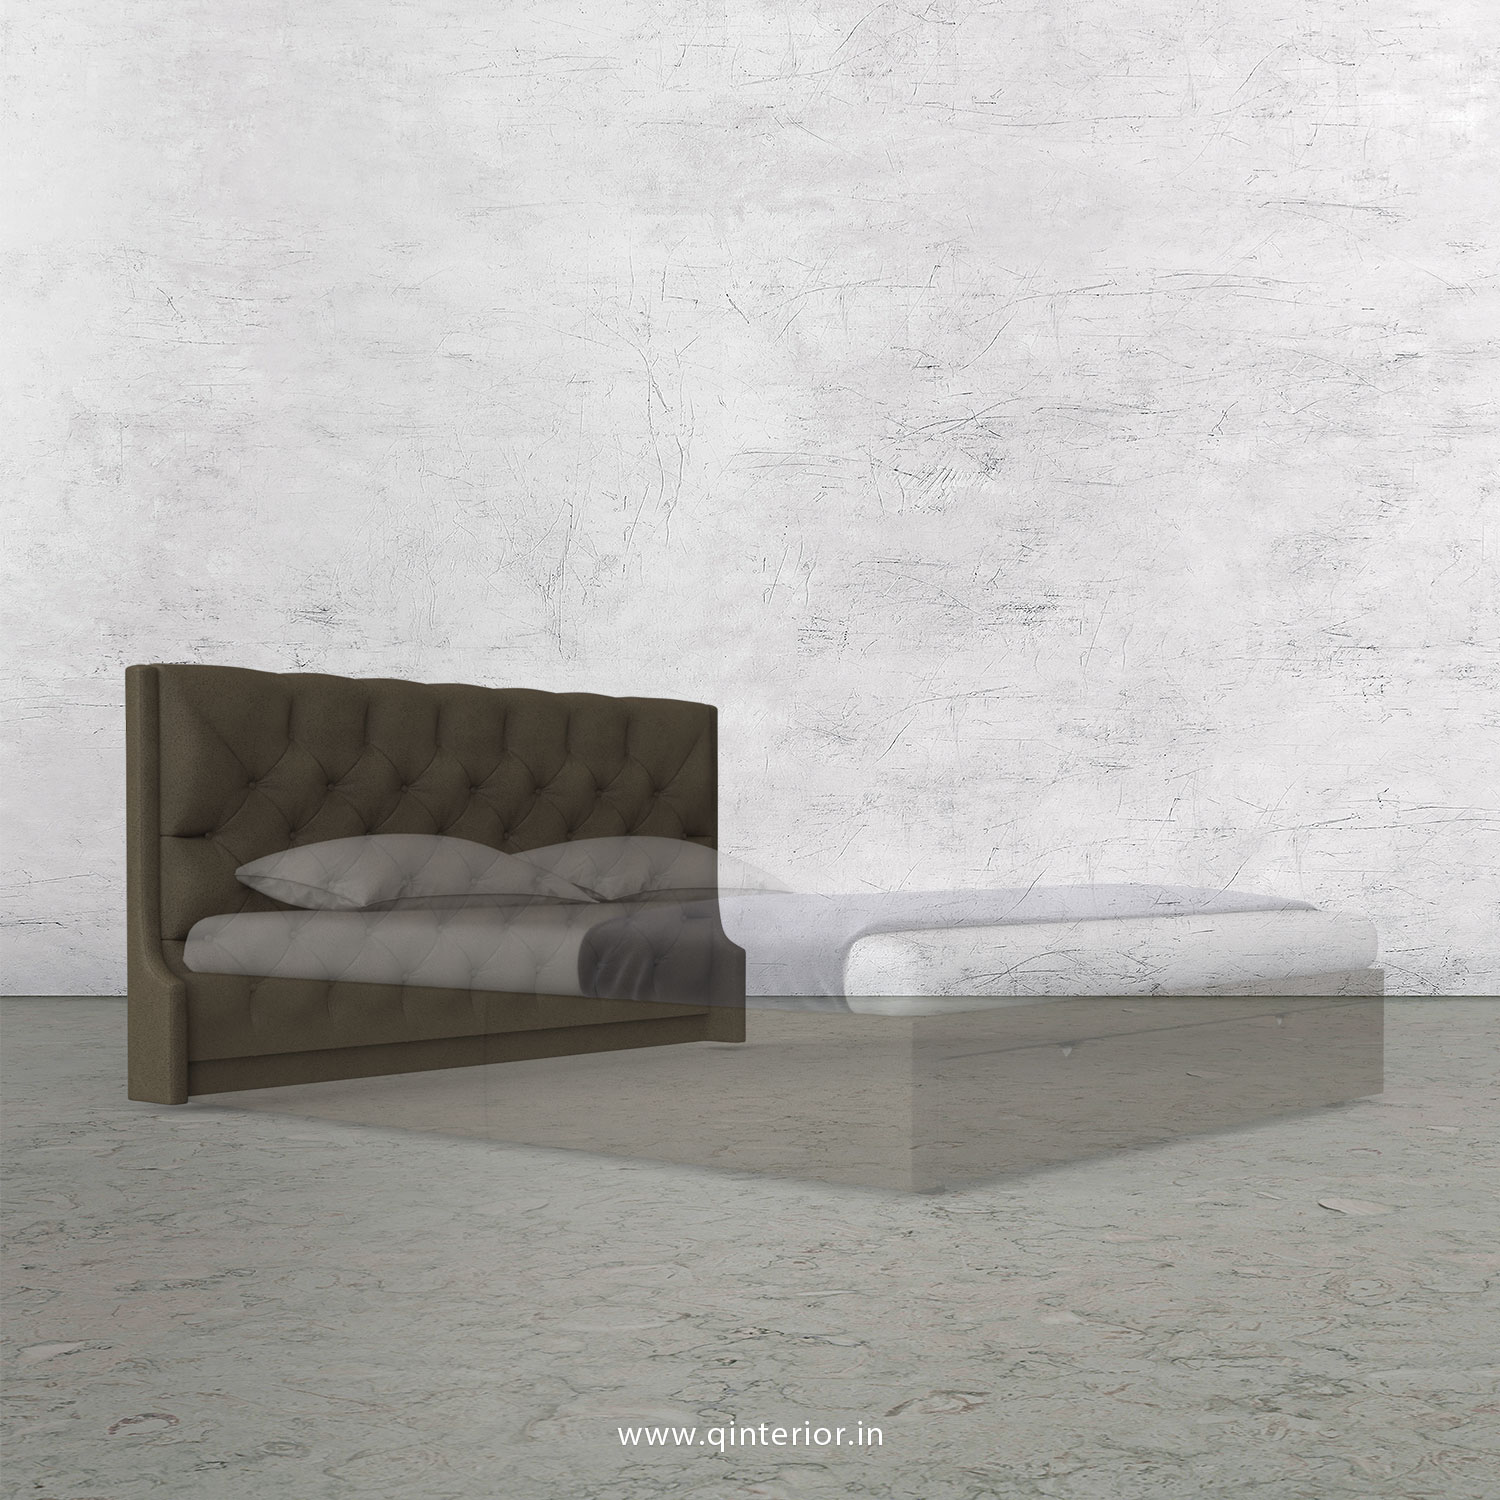 Scorpius Bed Headboard in Fab Leather Fabric - BHB002 FL06